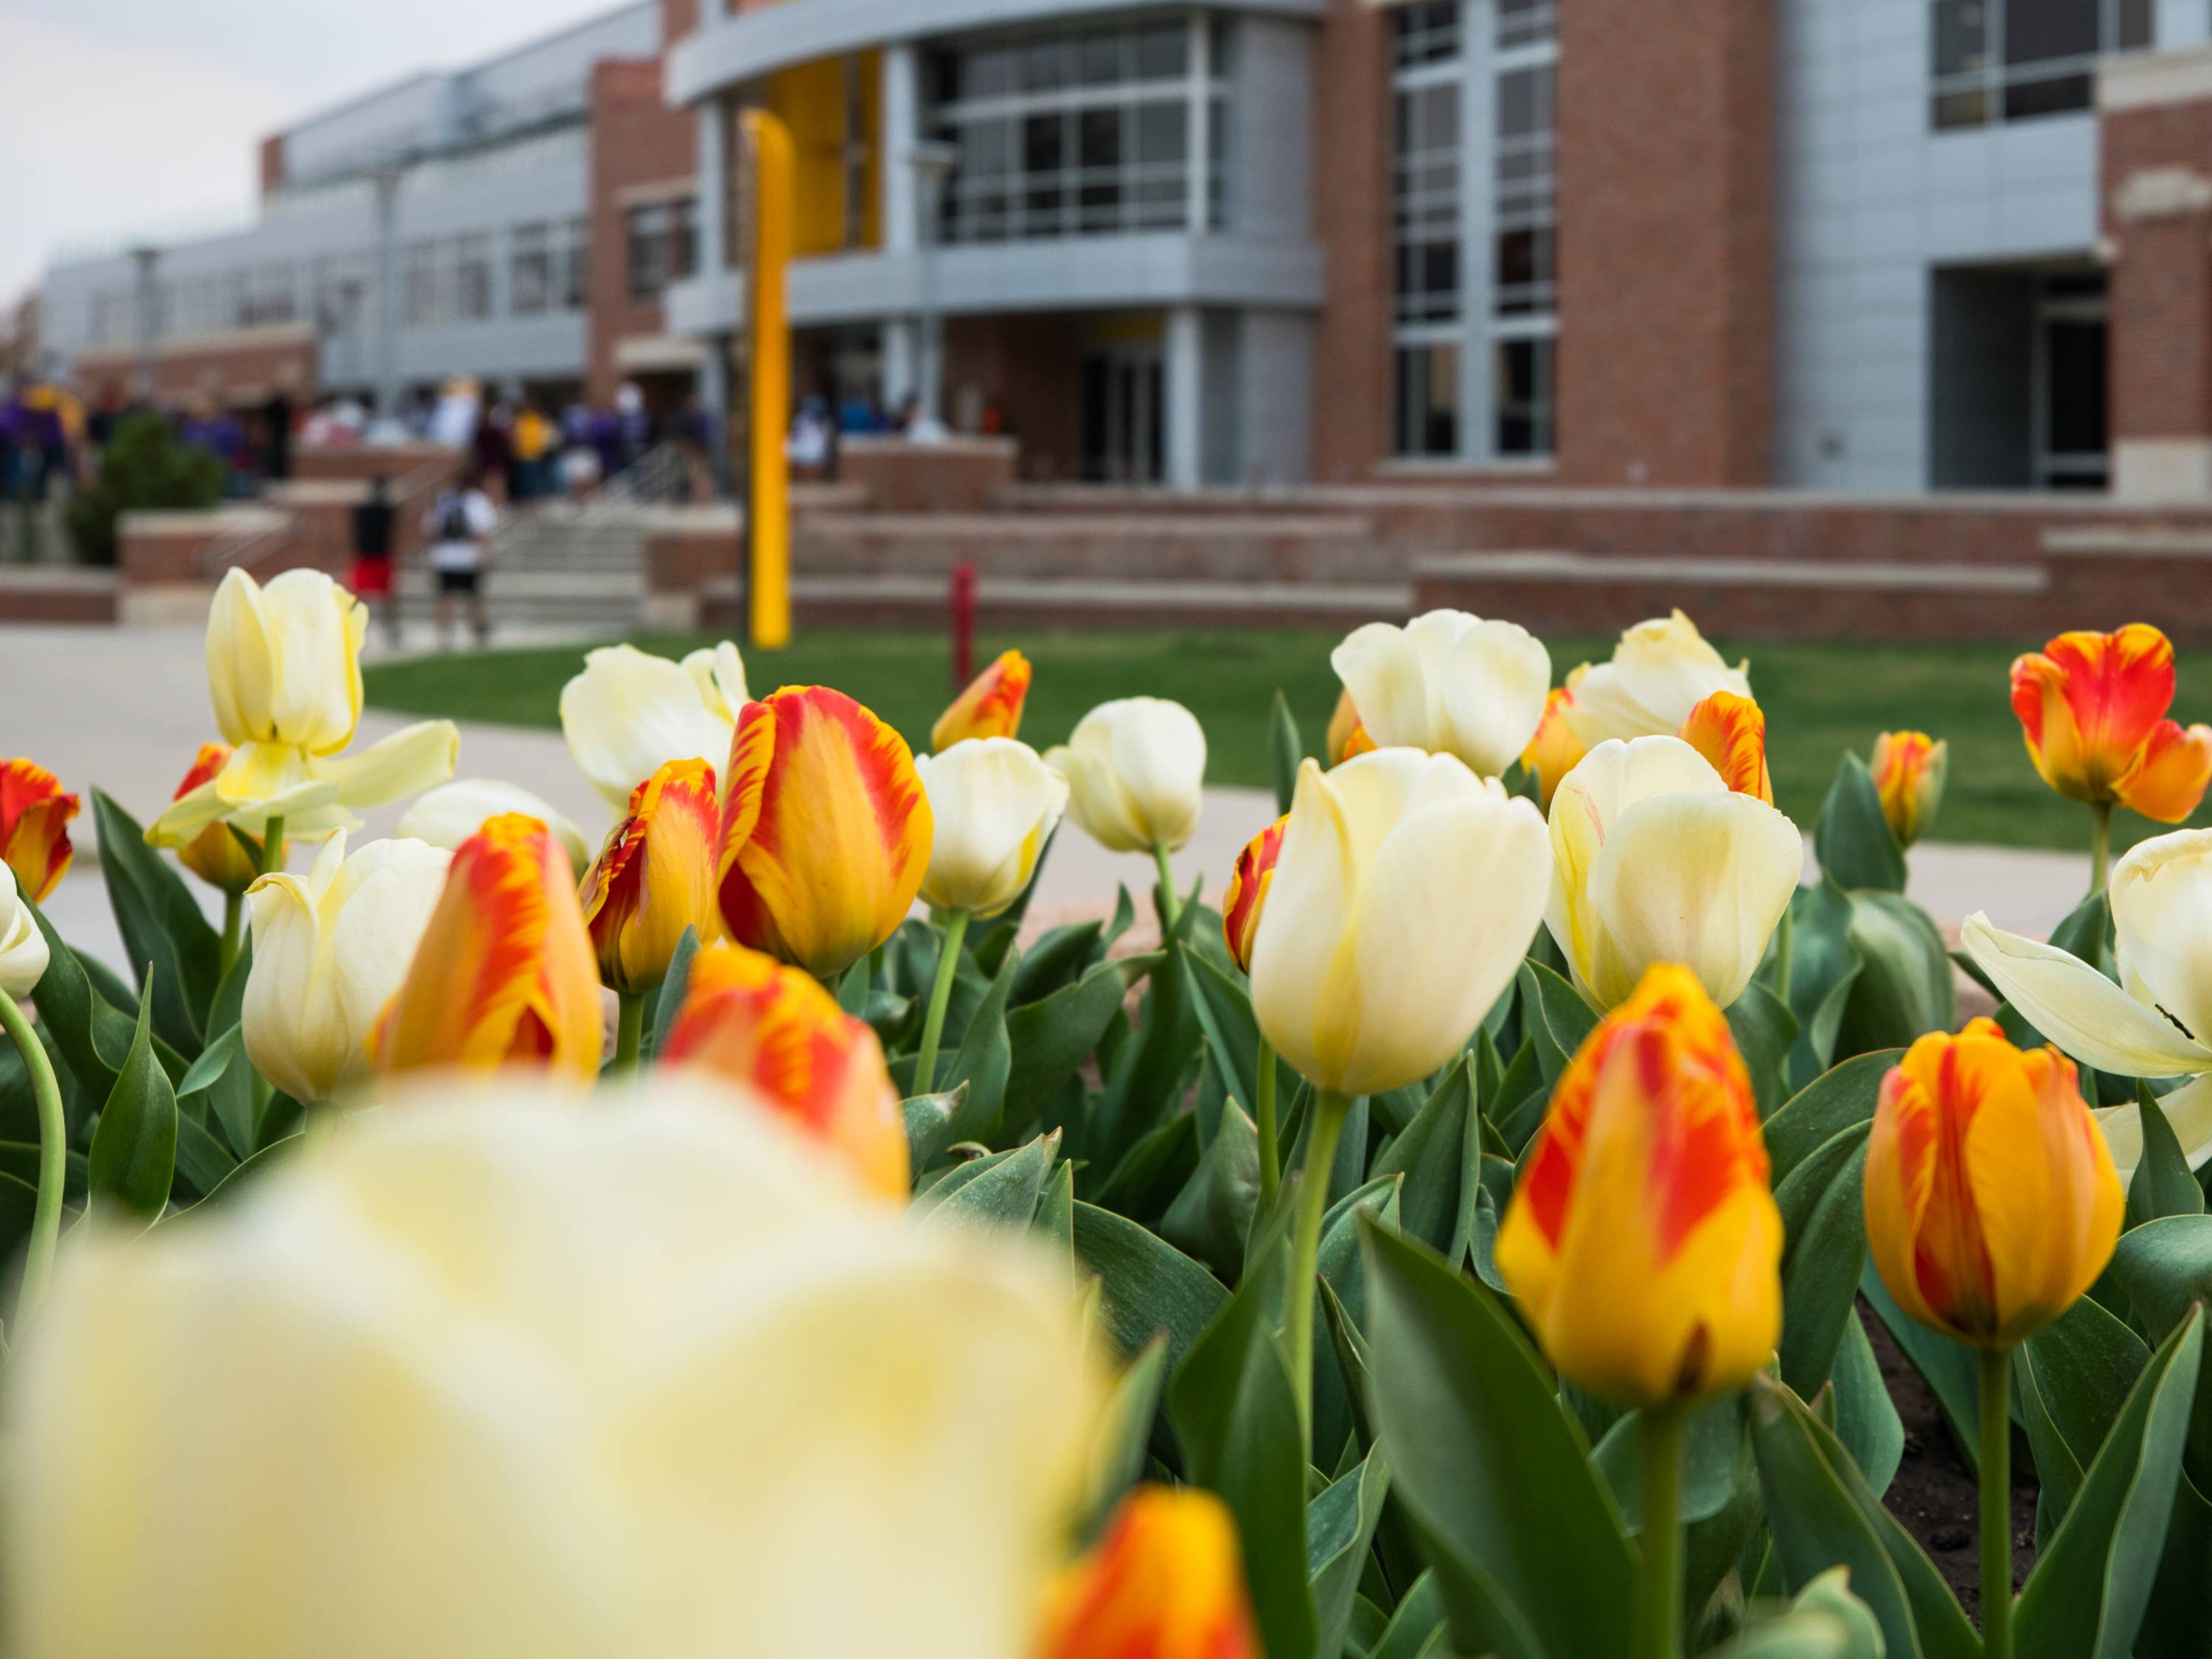 Tulips in front of the Rhatigan Student Center.